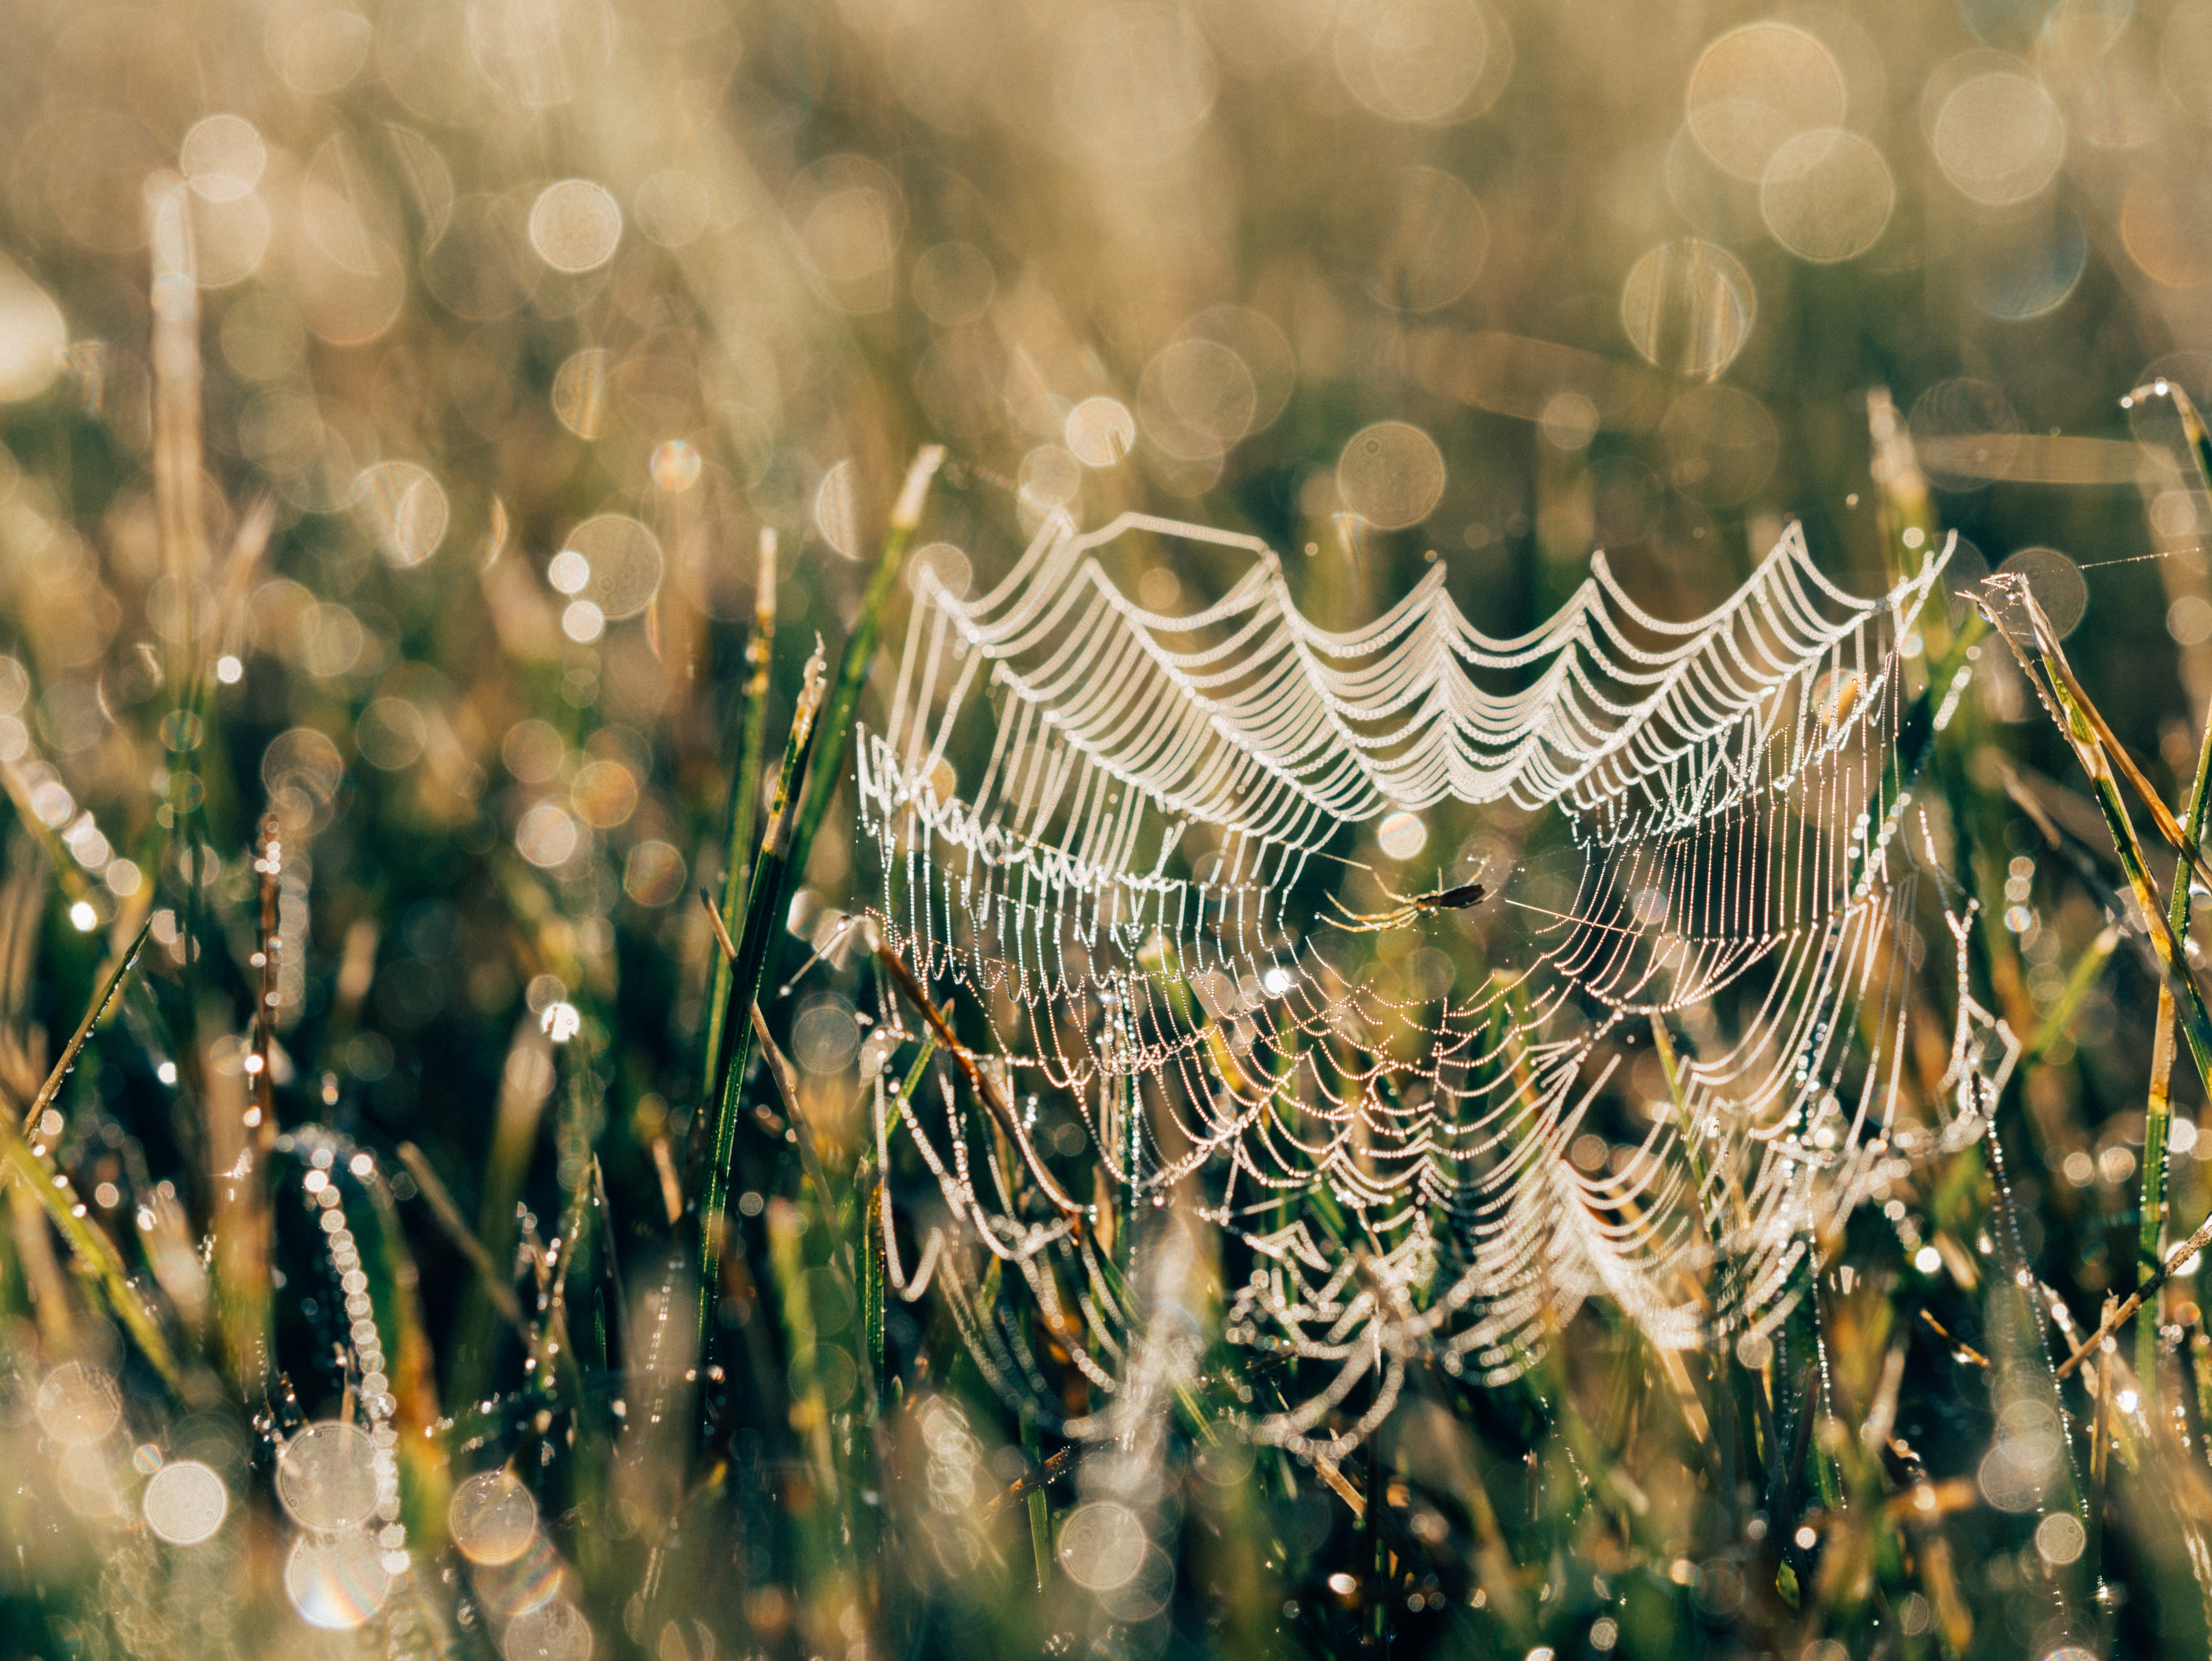 selective focus photo of spider web